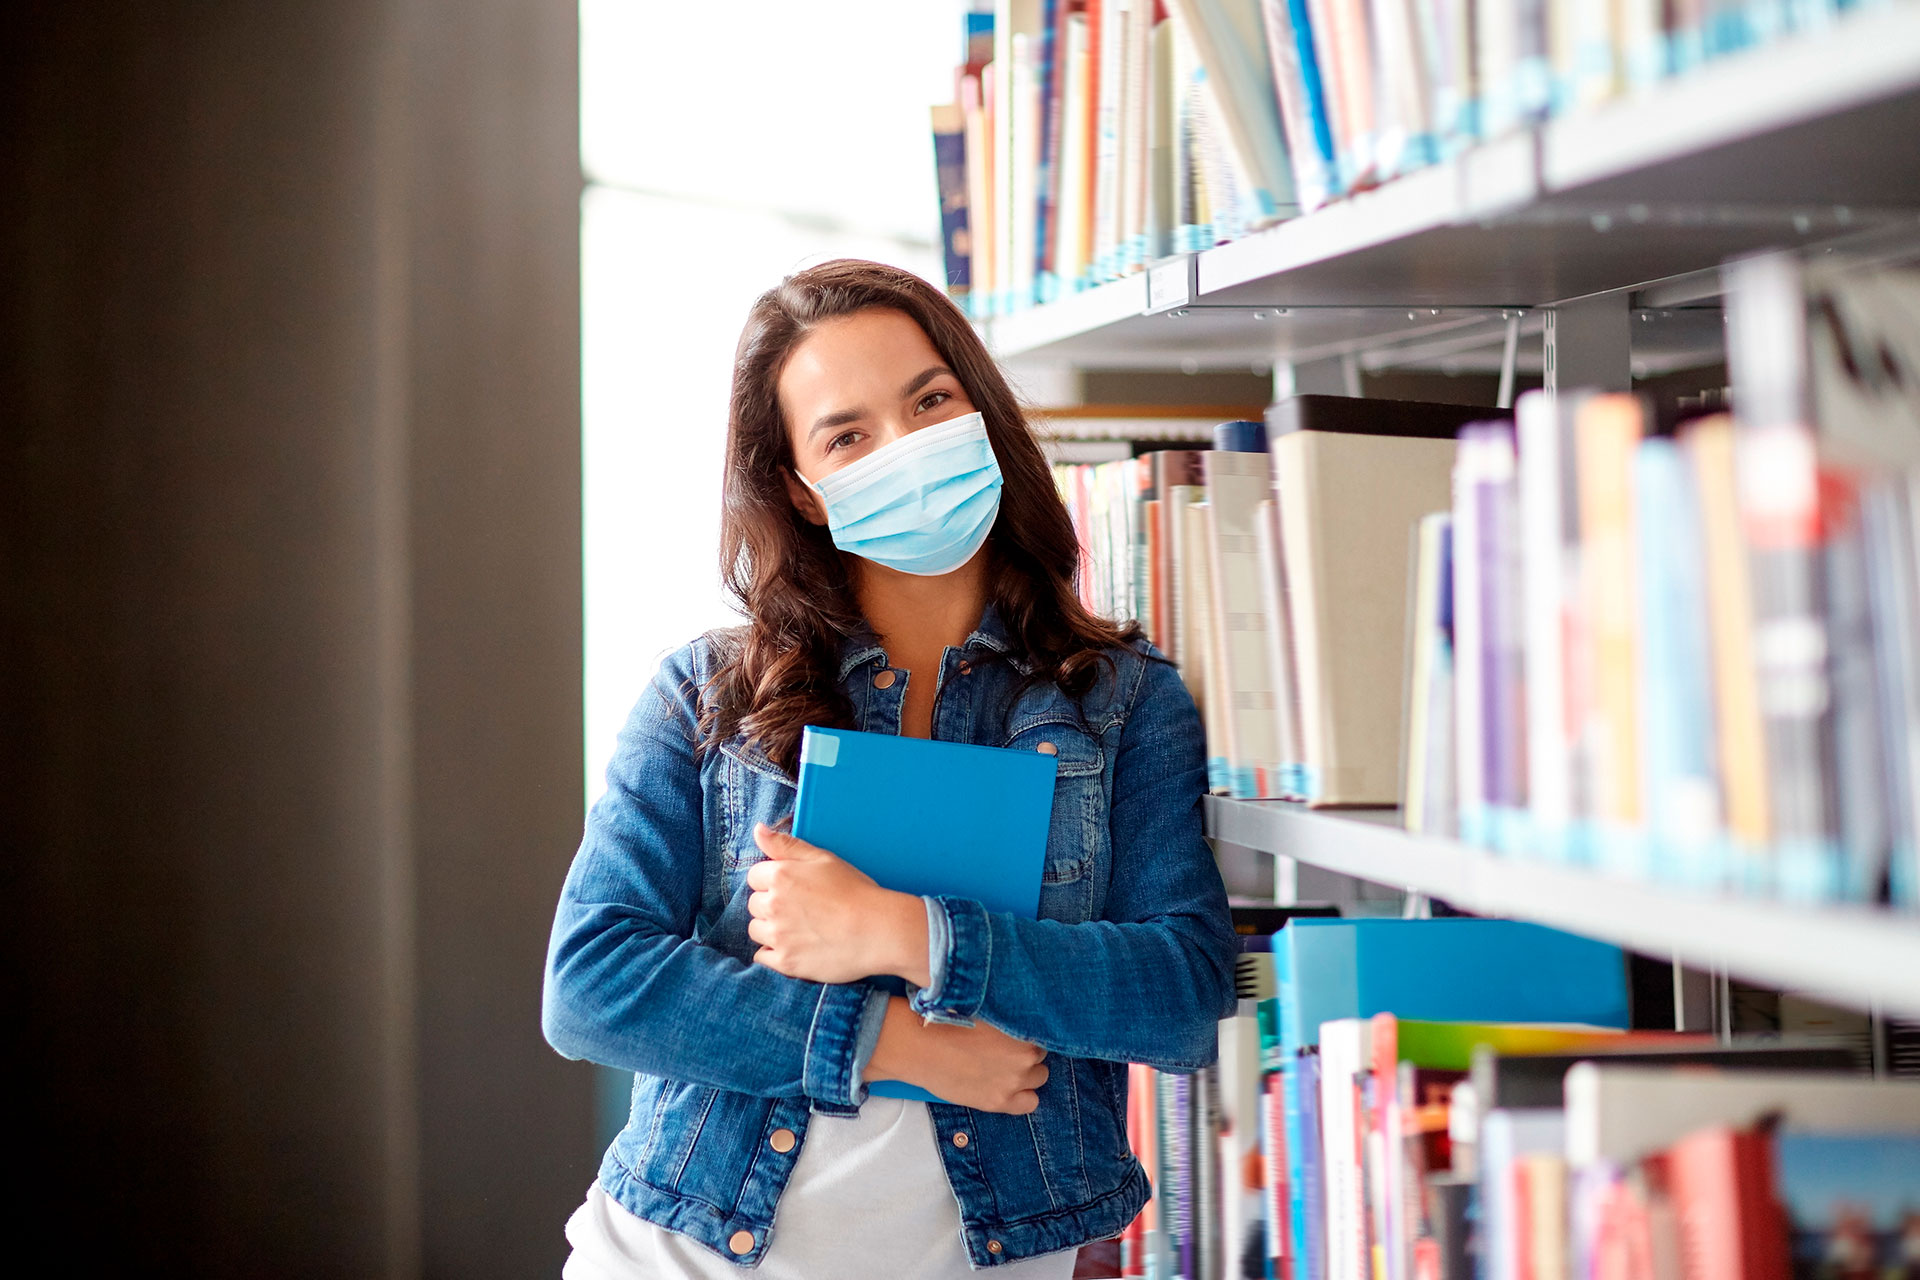 Mask wearing female student standing next to bookshelves and holding book